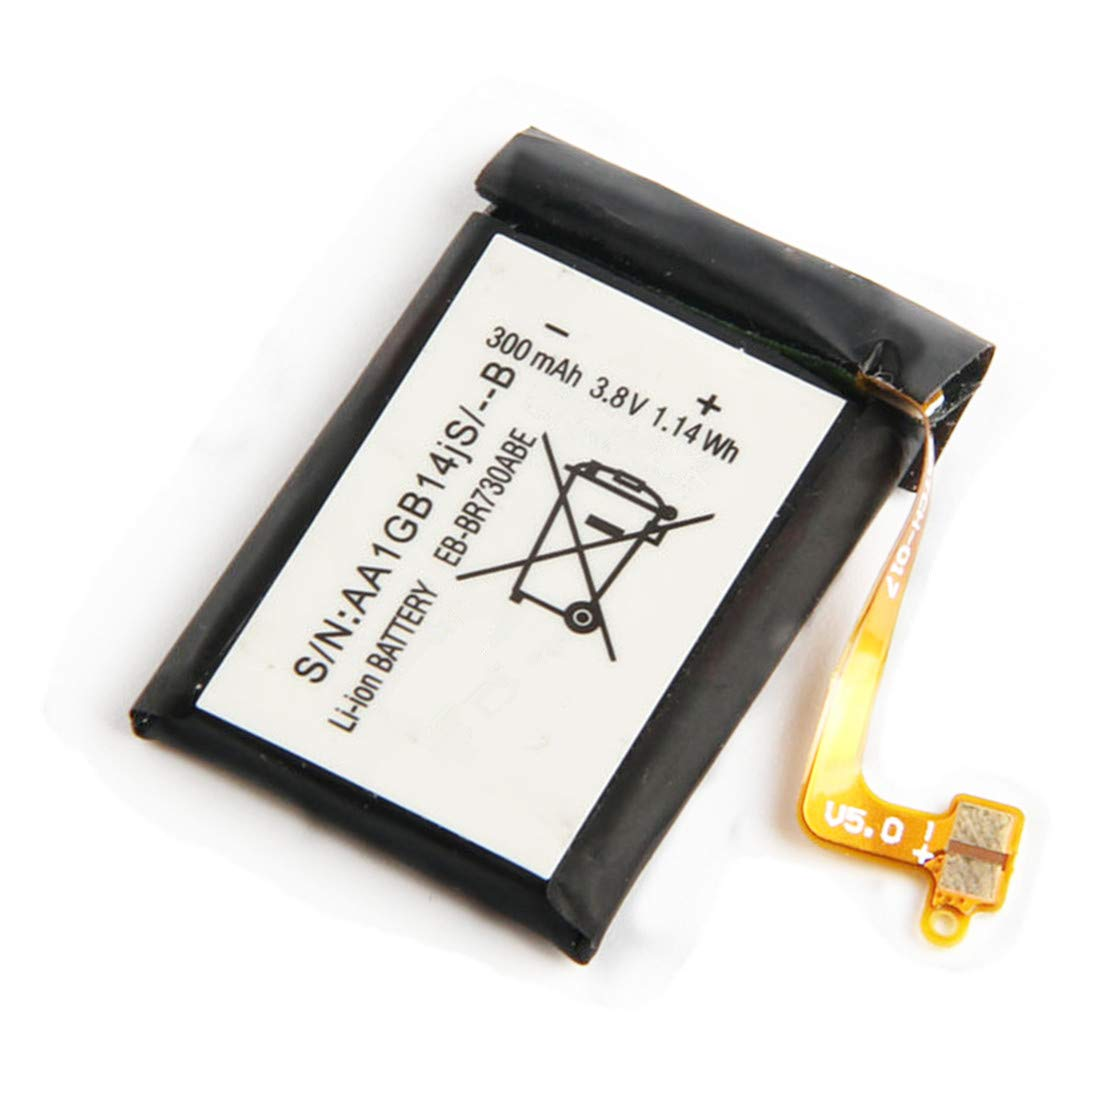 YNYNEW Replacement EB-BR730ABE Battery for Samsung Gear S2 3G SM-R730 SM-R730A SM-R730V SM-R600 SM-R730S SM-R735A R730 R730A R730V R600 R730S R730T